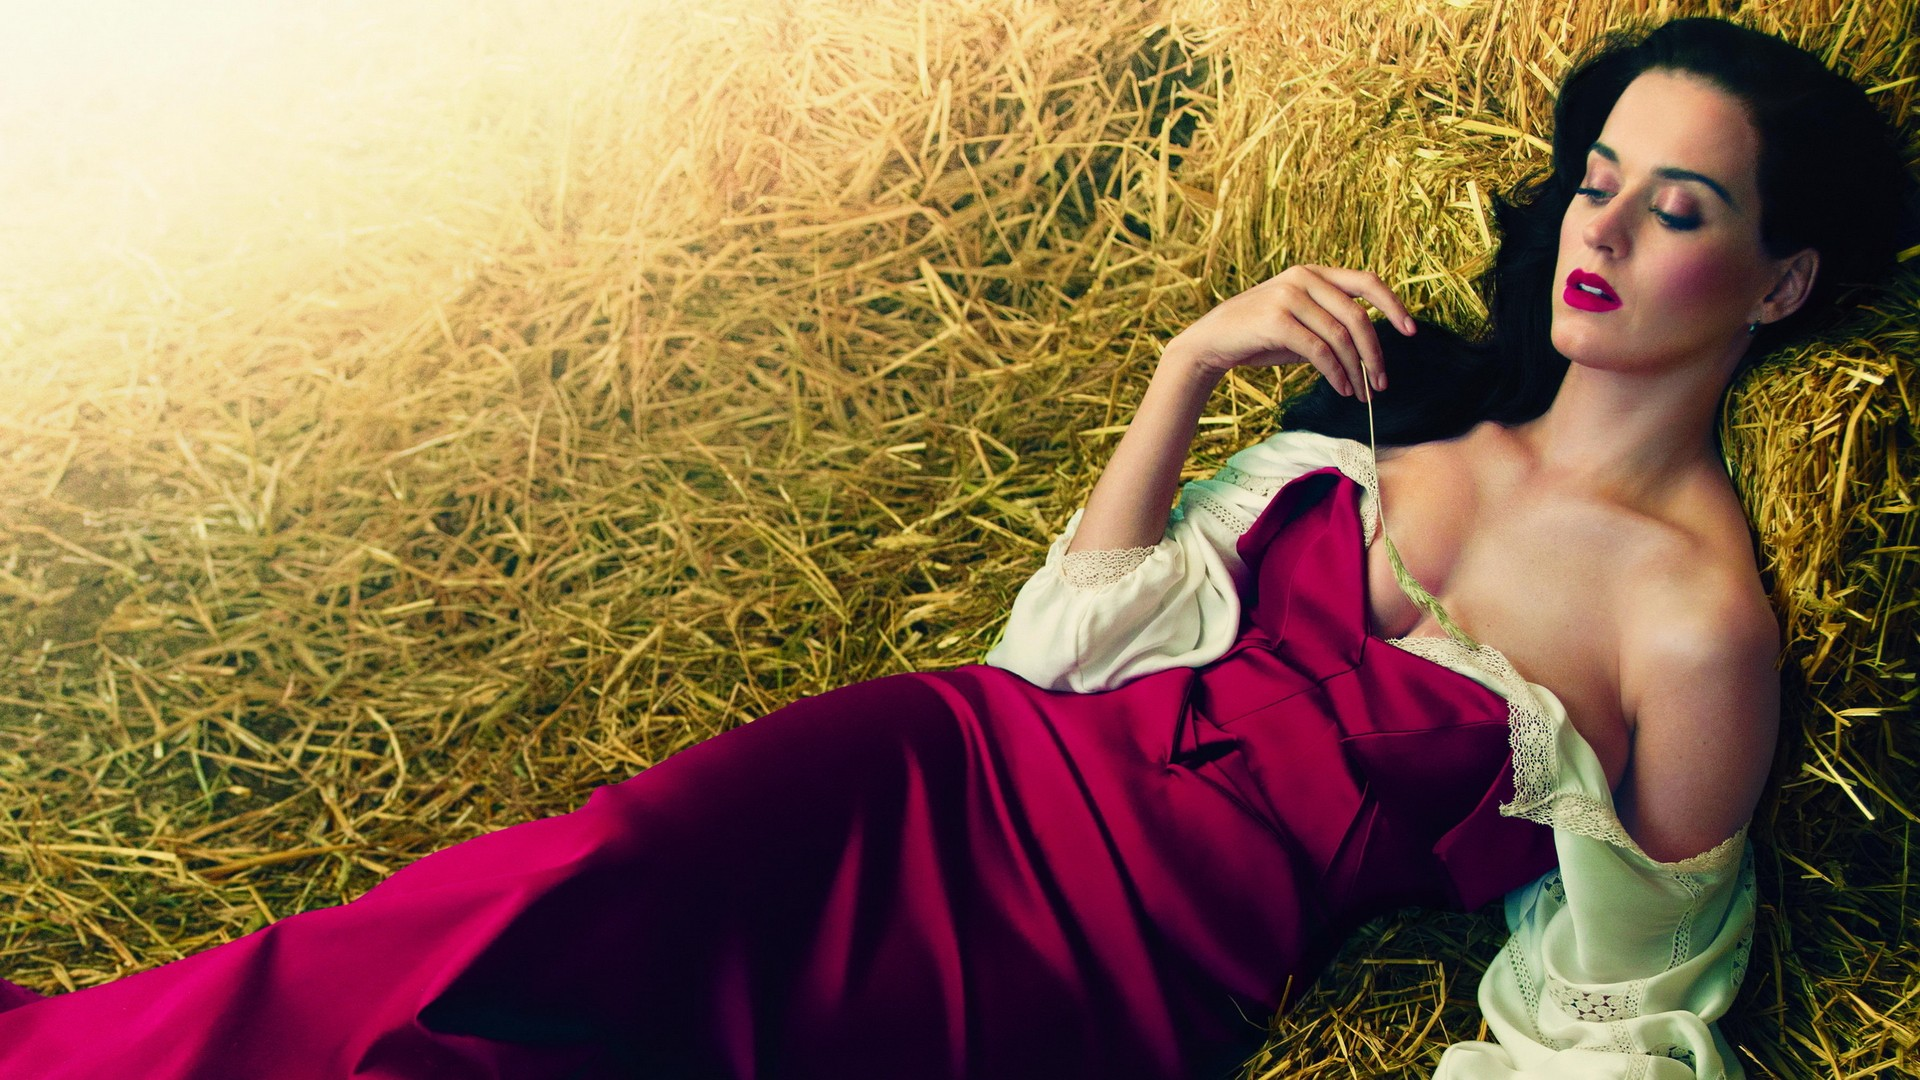 Katy Perry Wallpapers Pictures Images